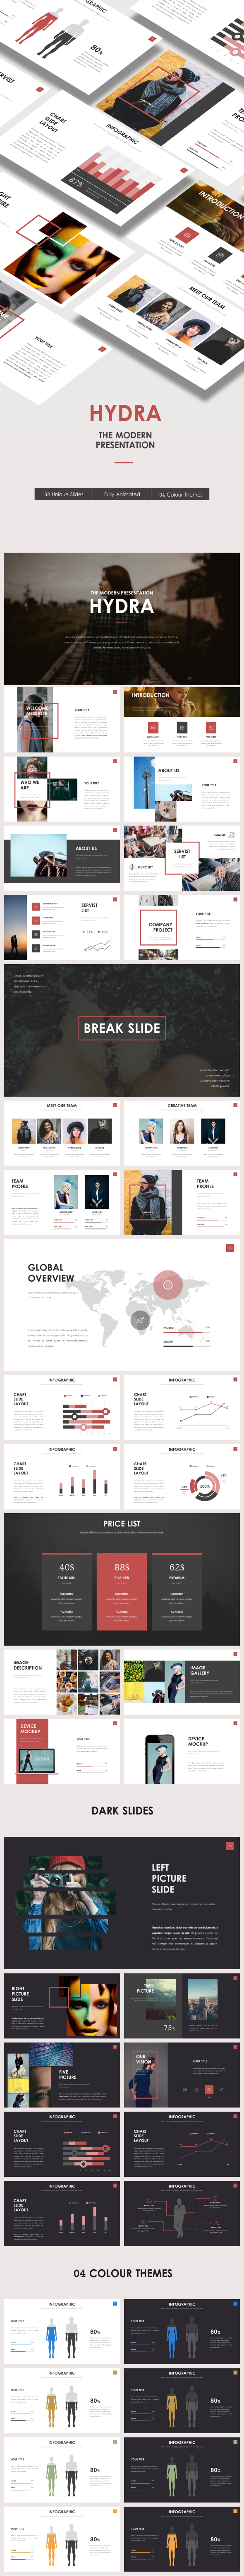 Hydra Powerpoint Template - Business PowerPoint Templates